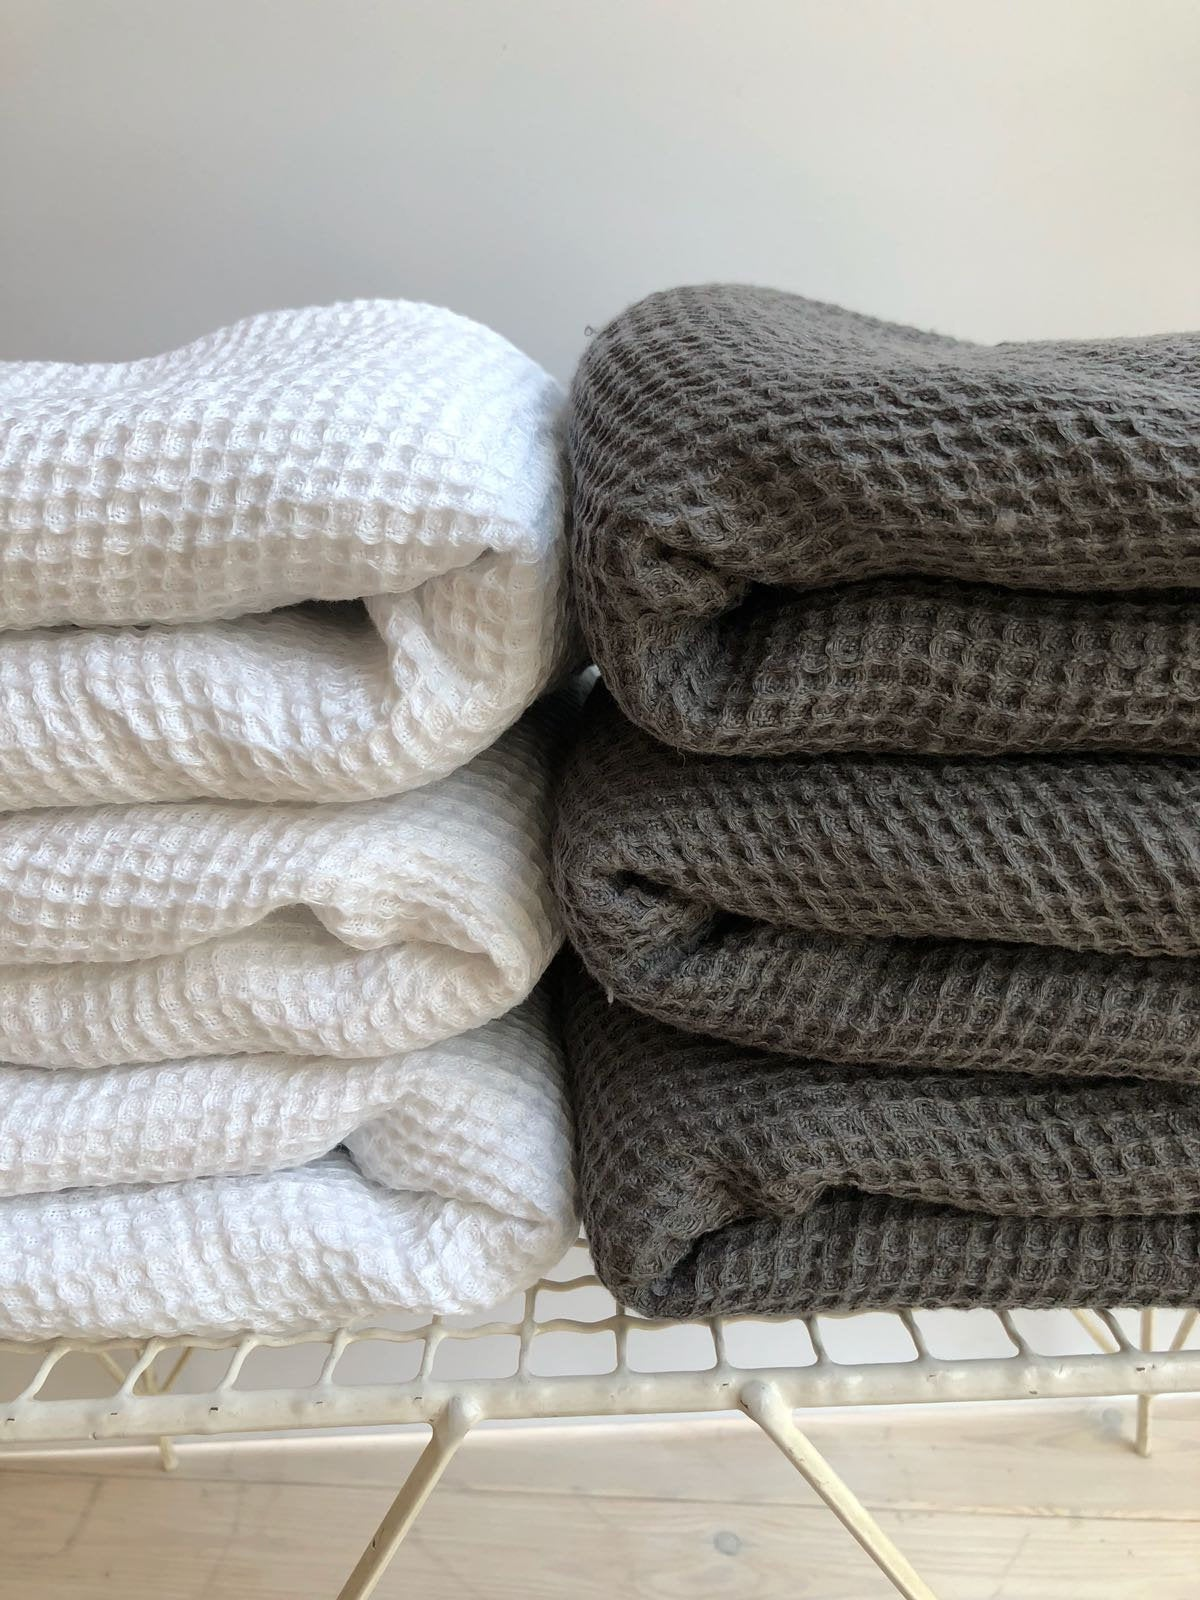 White linen bath towel waffle, large towel, bath towel, massage towel, sauna towel, woven towel, 100% linen towel, gift towel, white towels